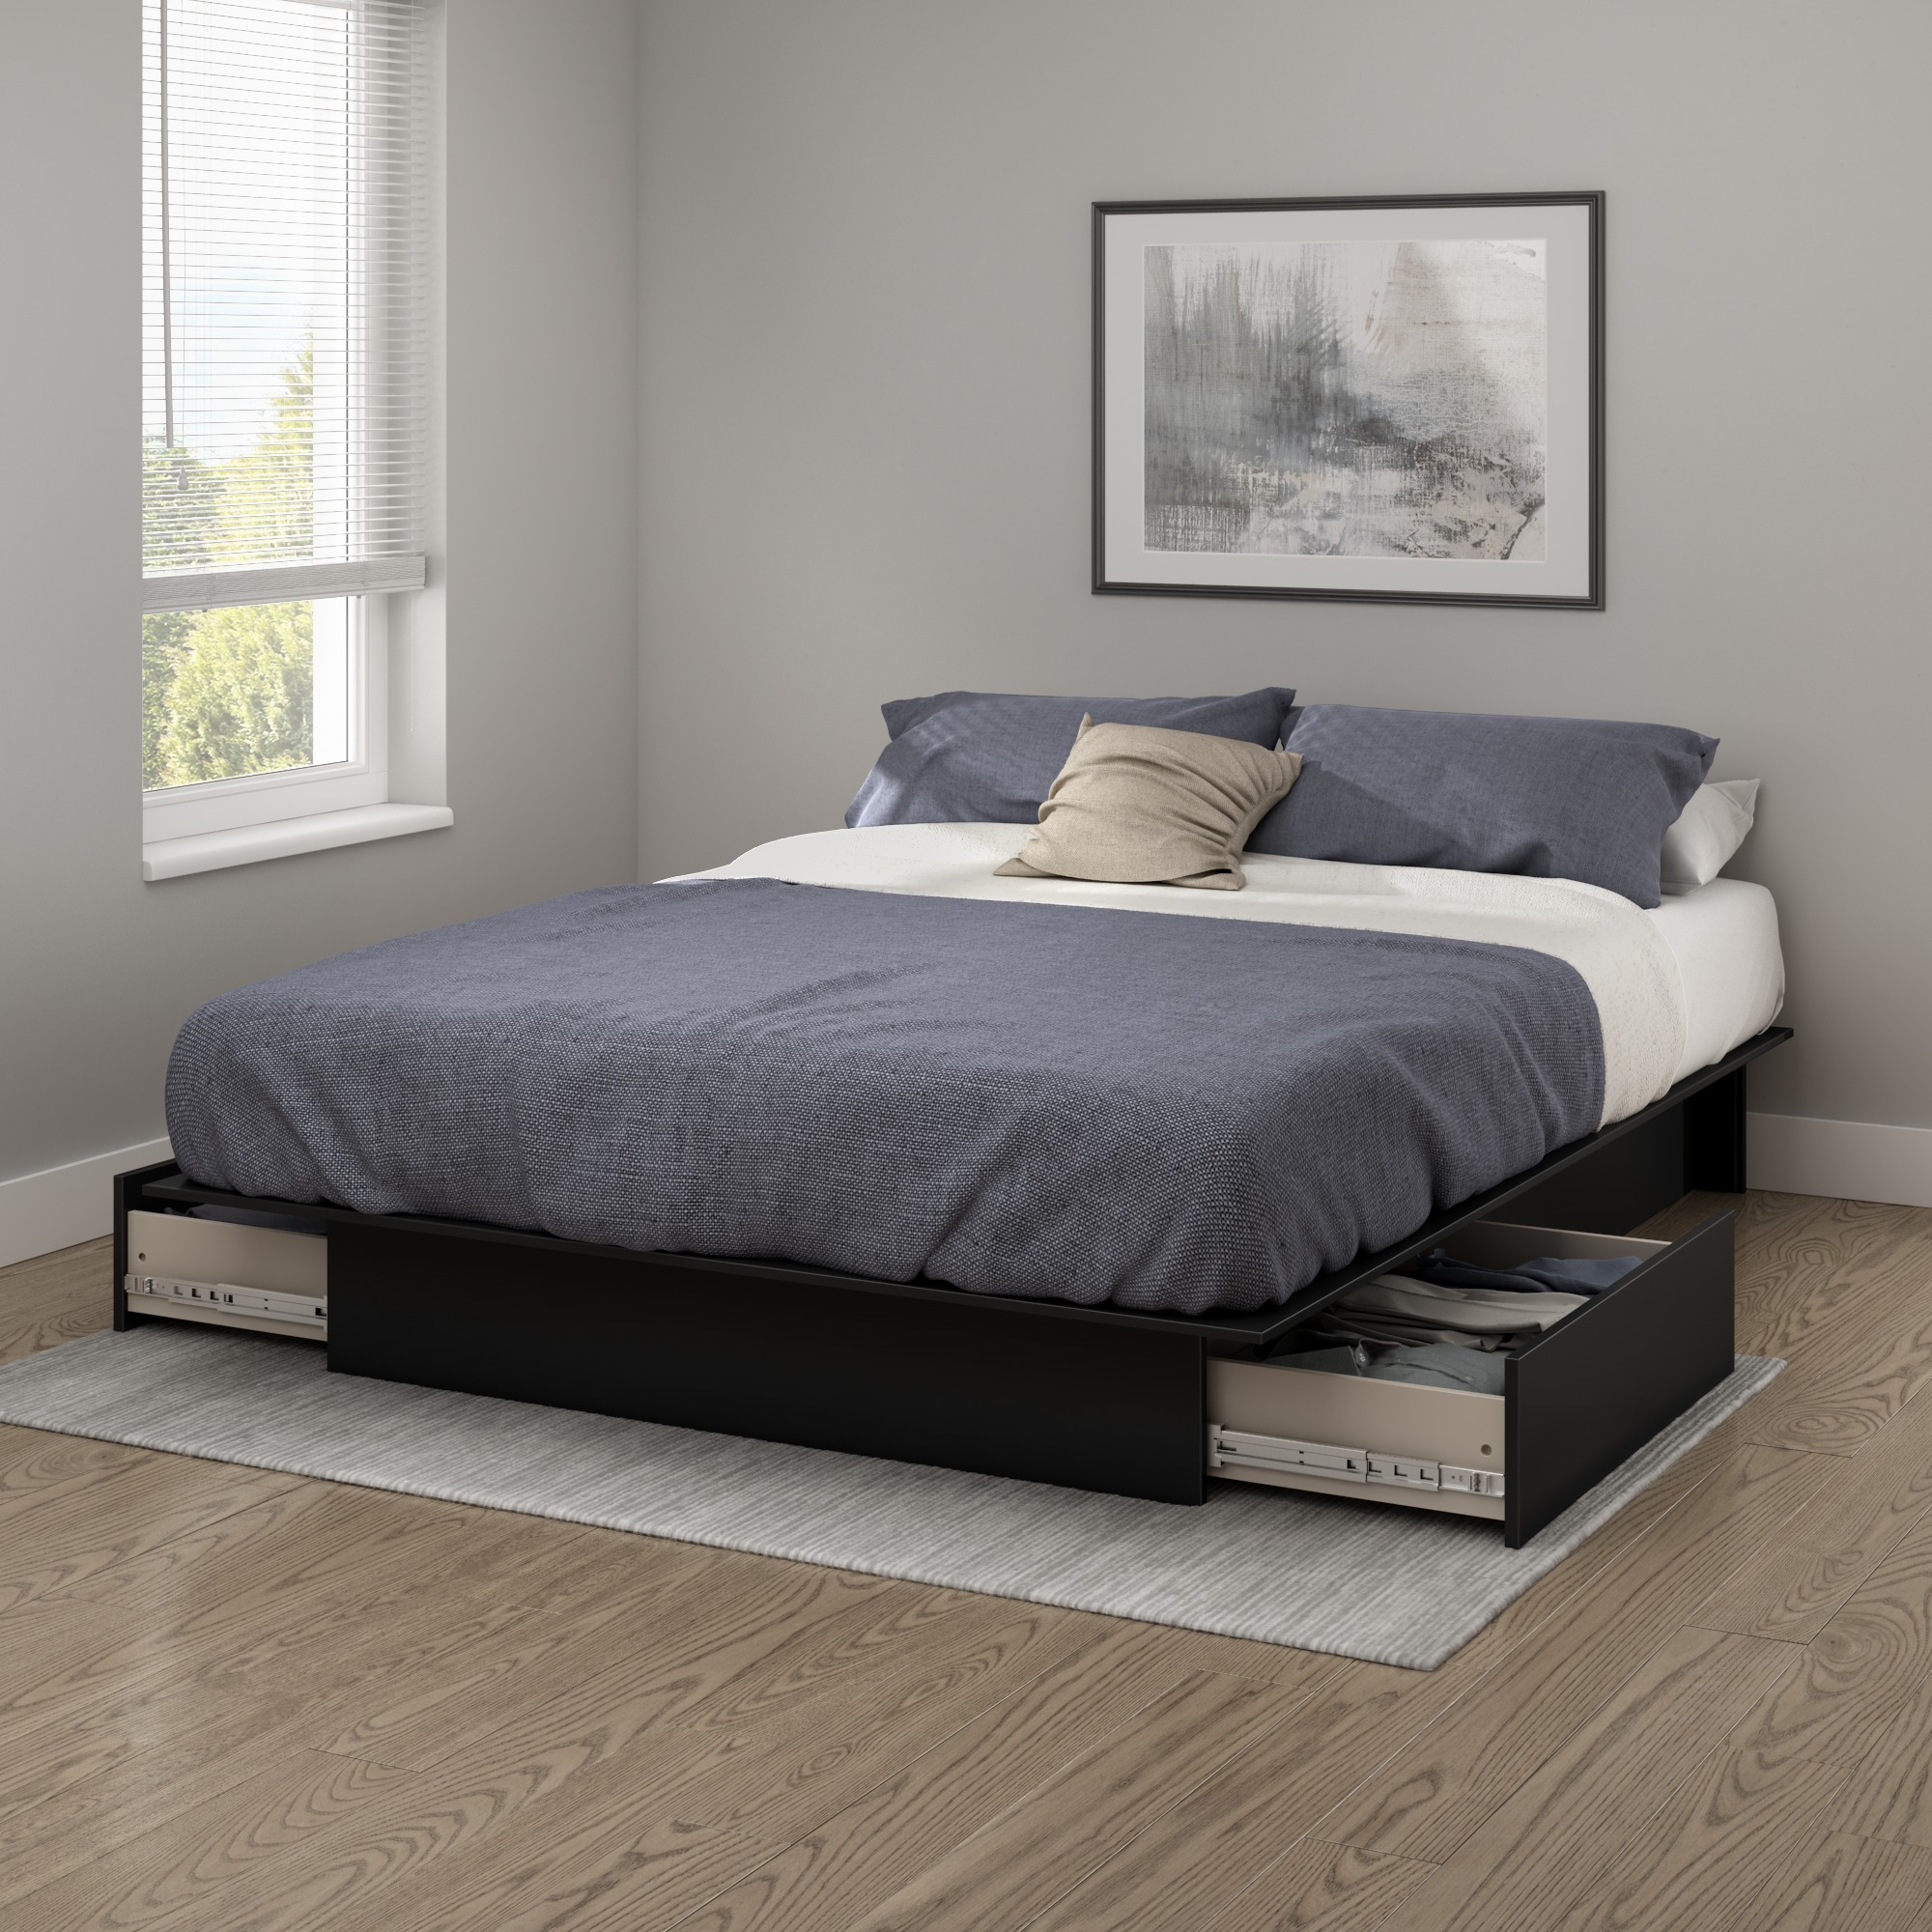 South Shore SoHo Full/Queen Storage Platform Bed with 2 Drawers, Multiple Finishes